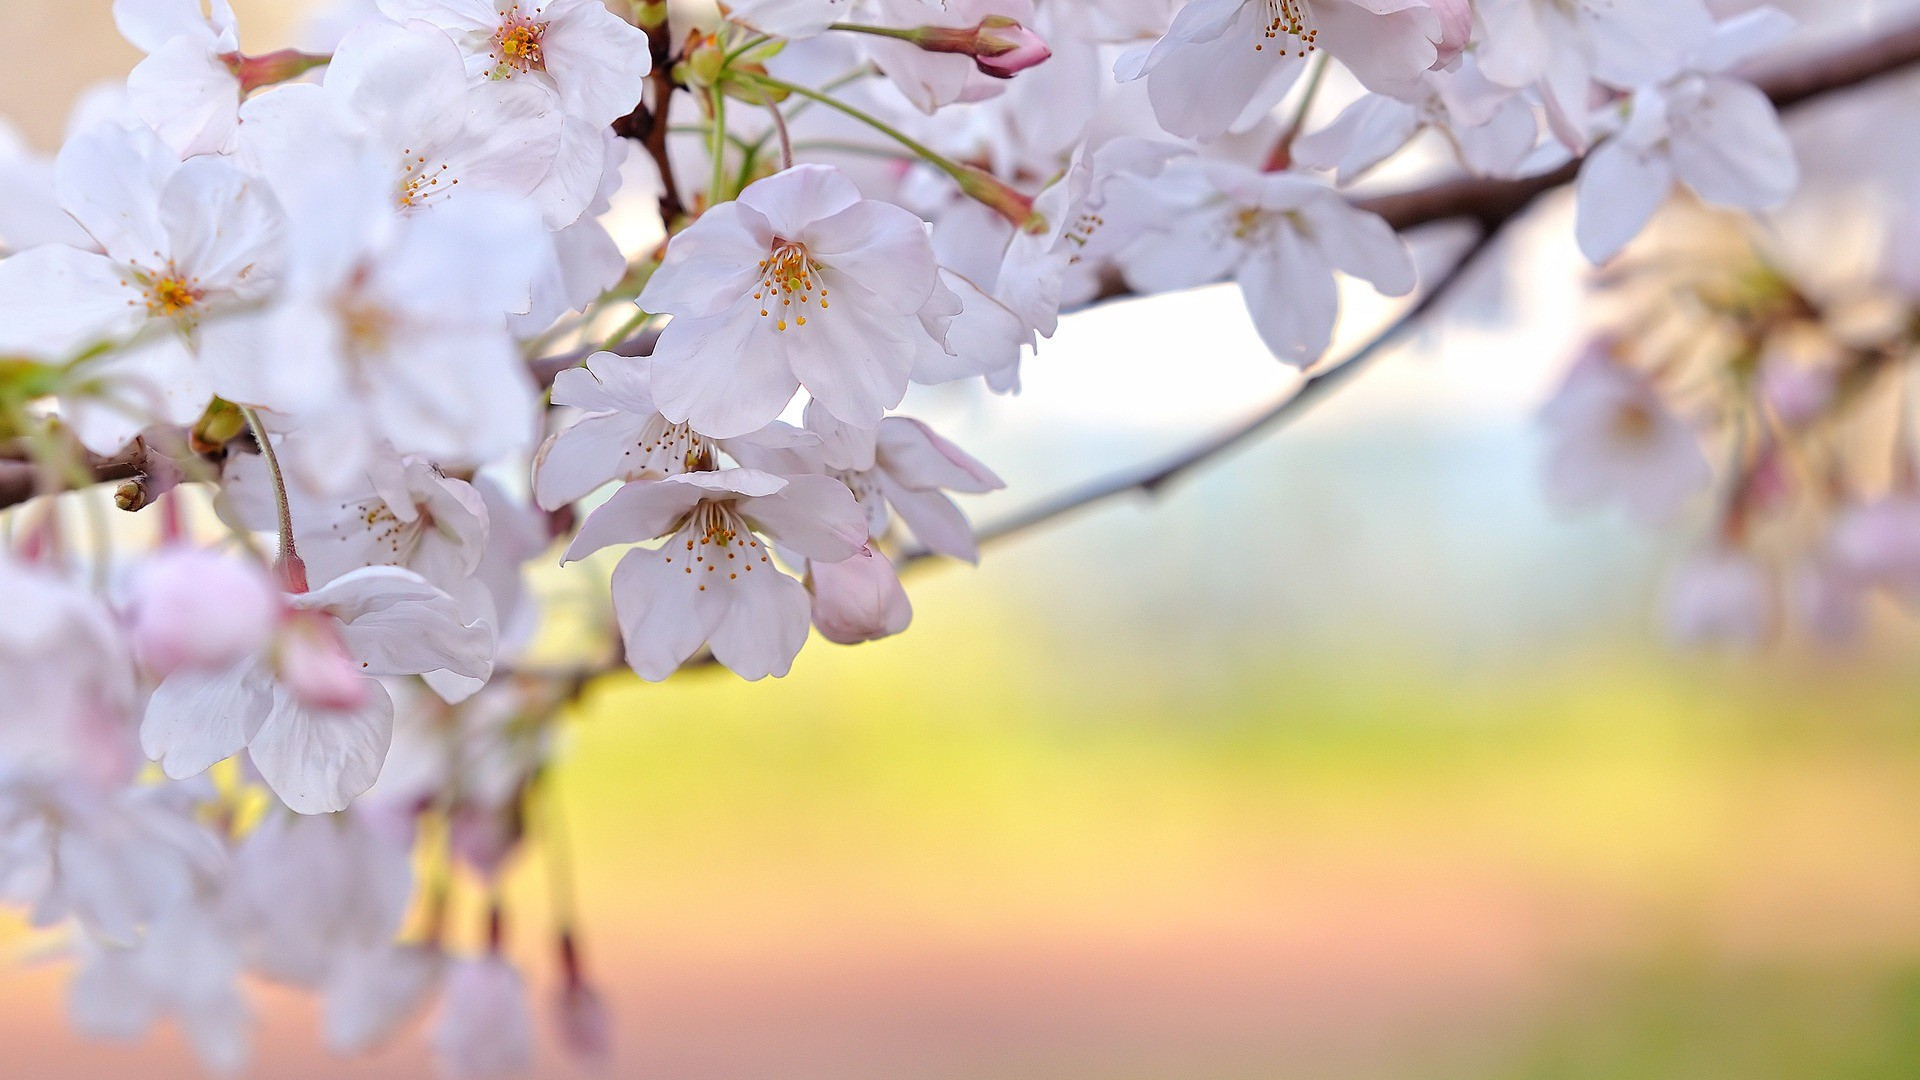 Pretty Spring Backgrounds And Wallpapers 60 Images